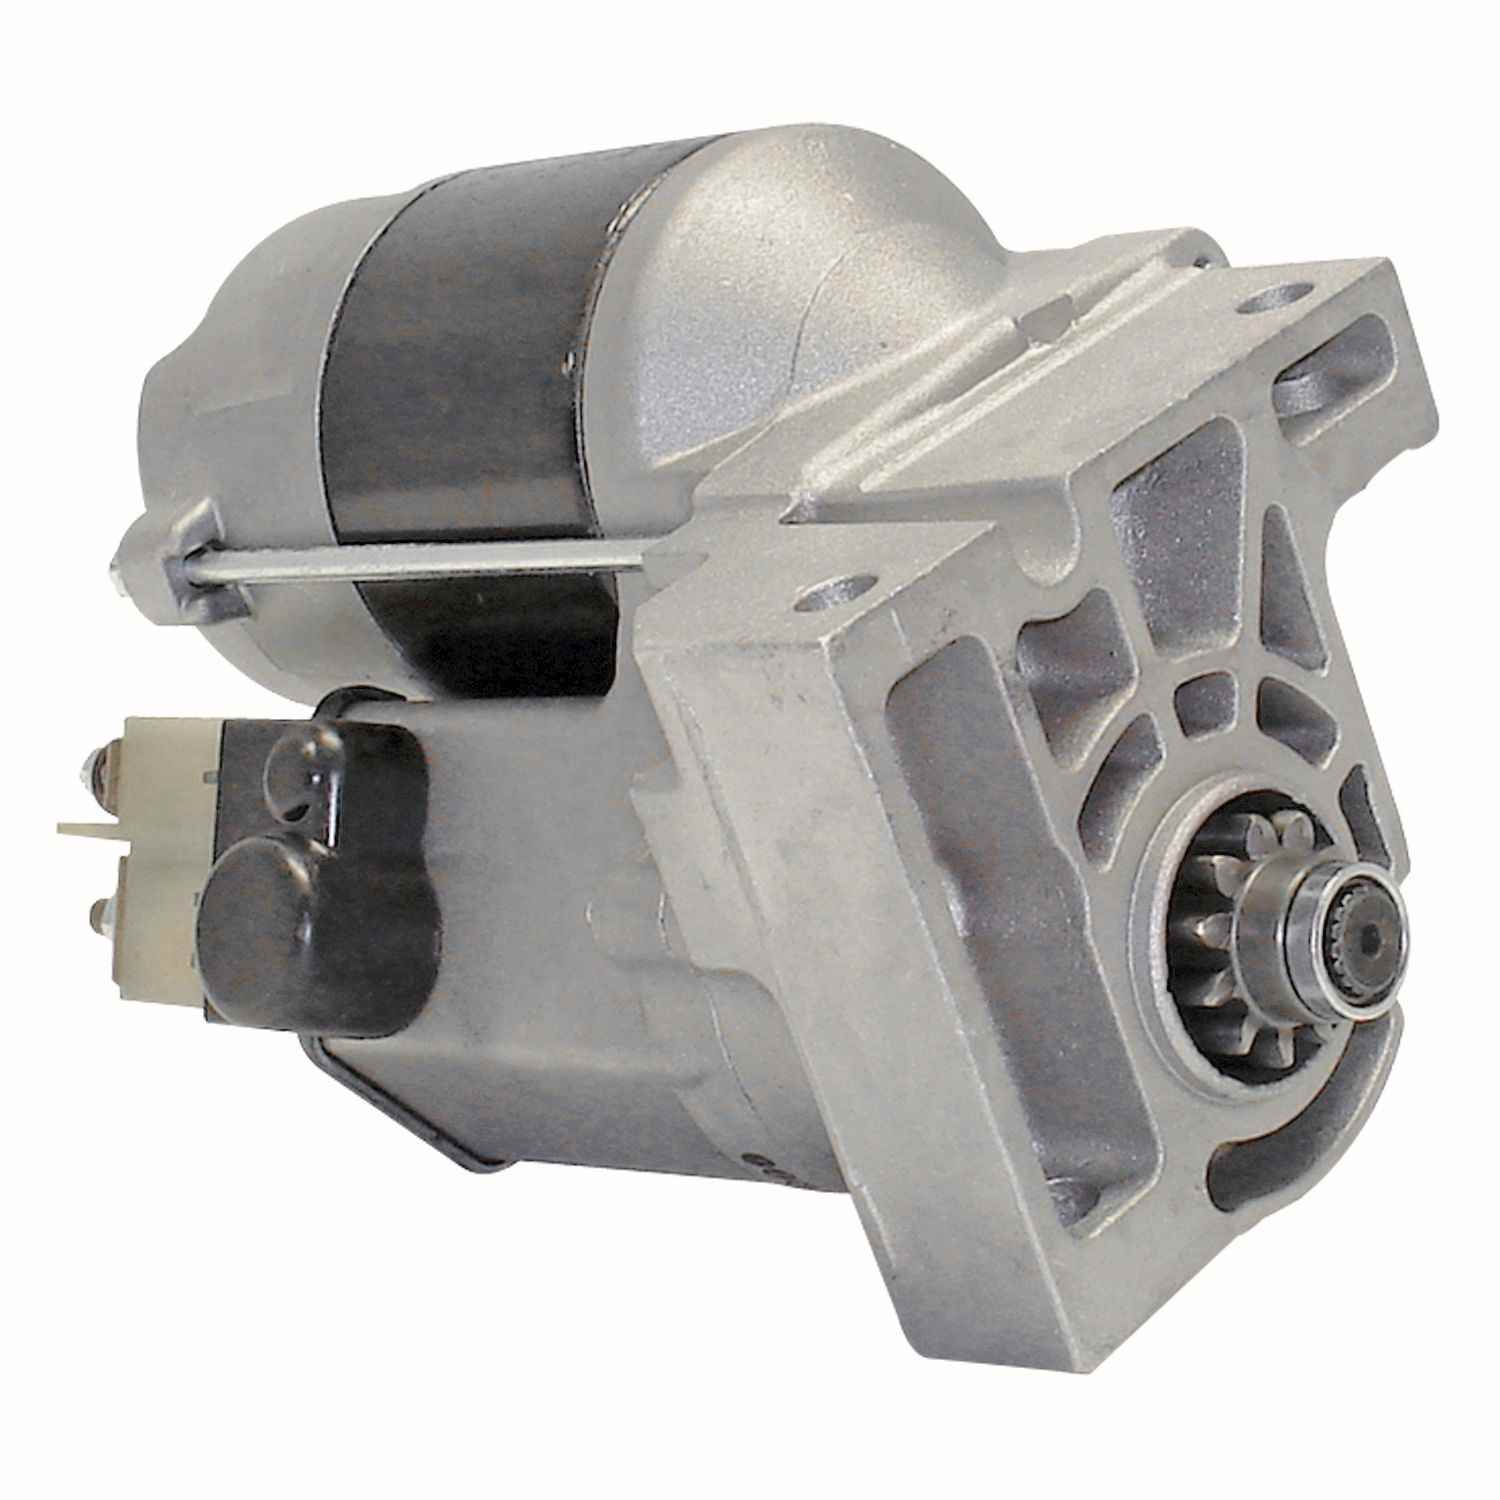 ACDELCO GOLD/PROFESSIONAL - Reman Starter Motor - DCC 336-1148